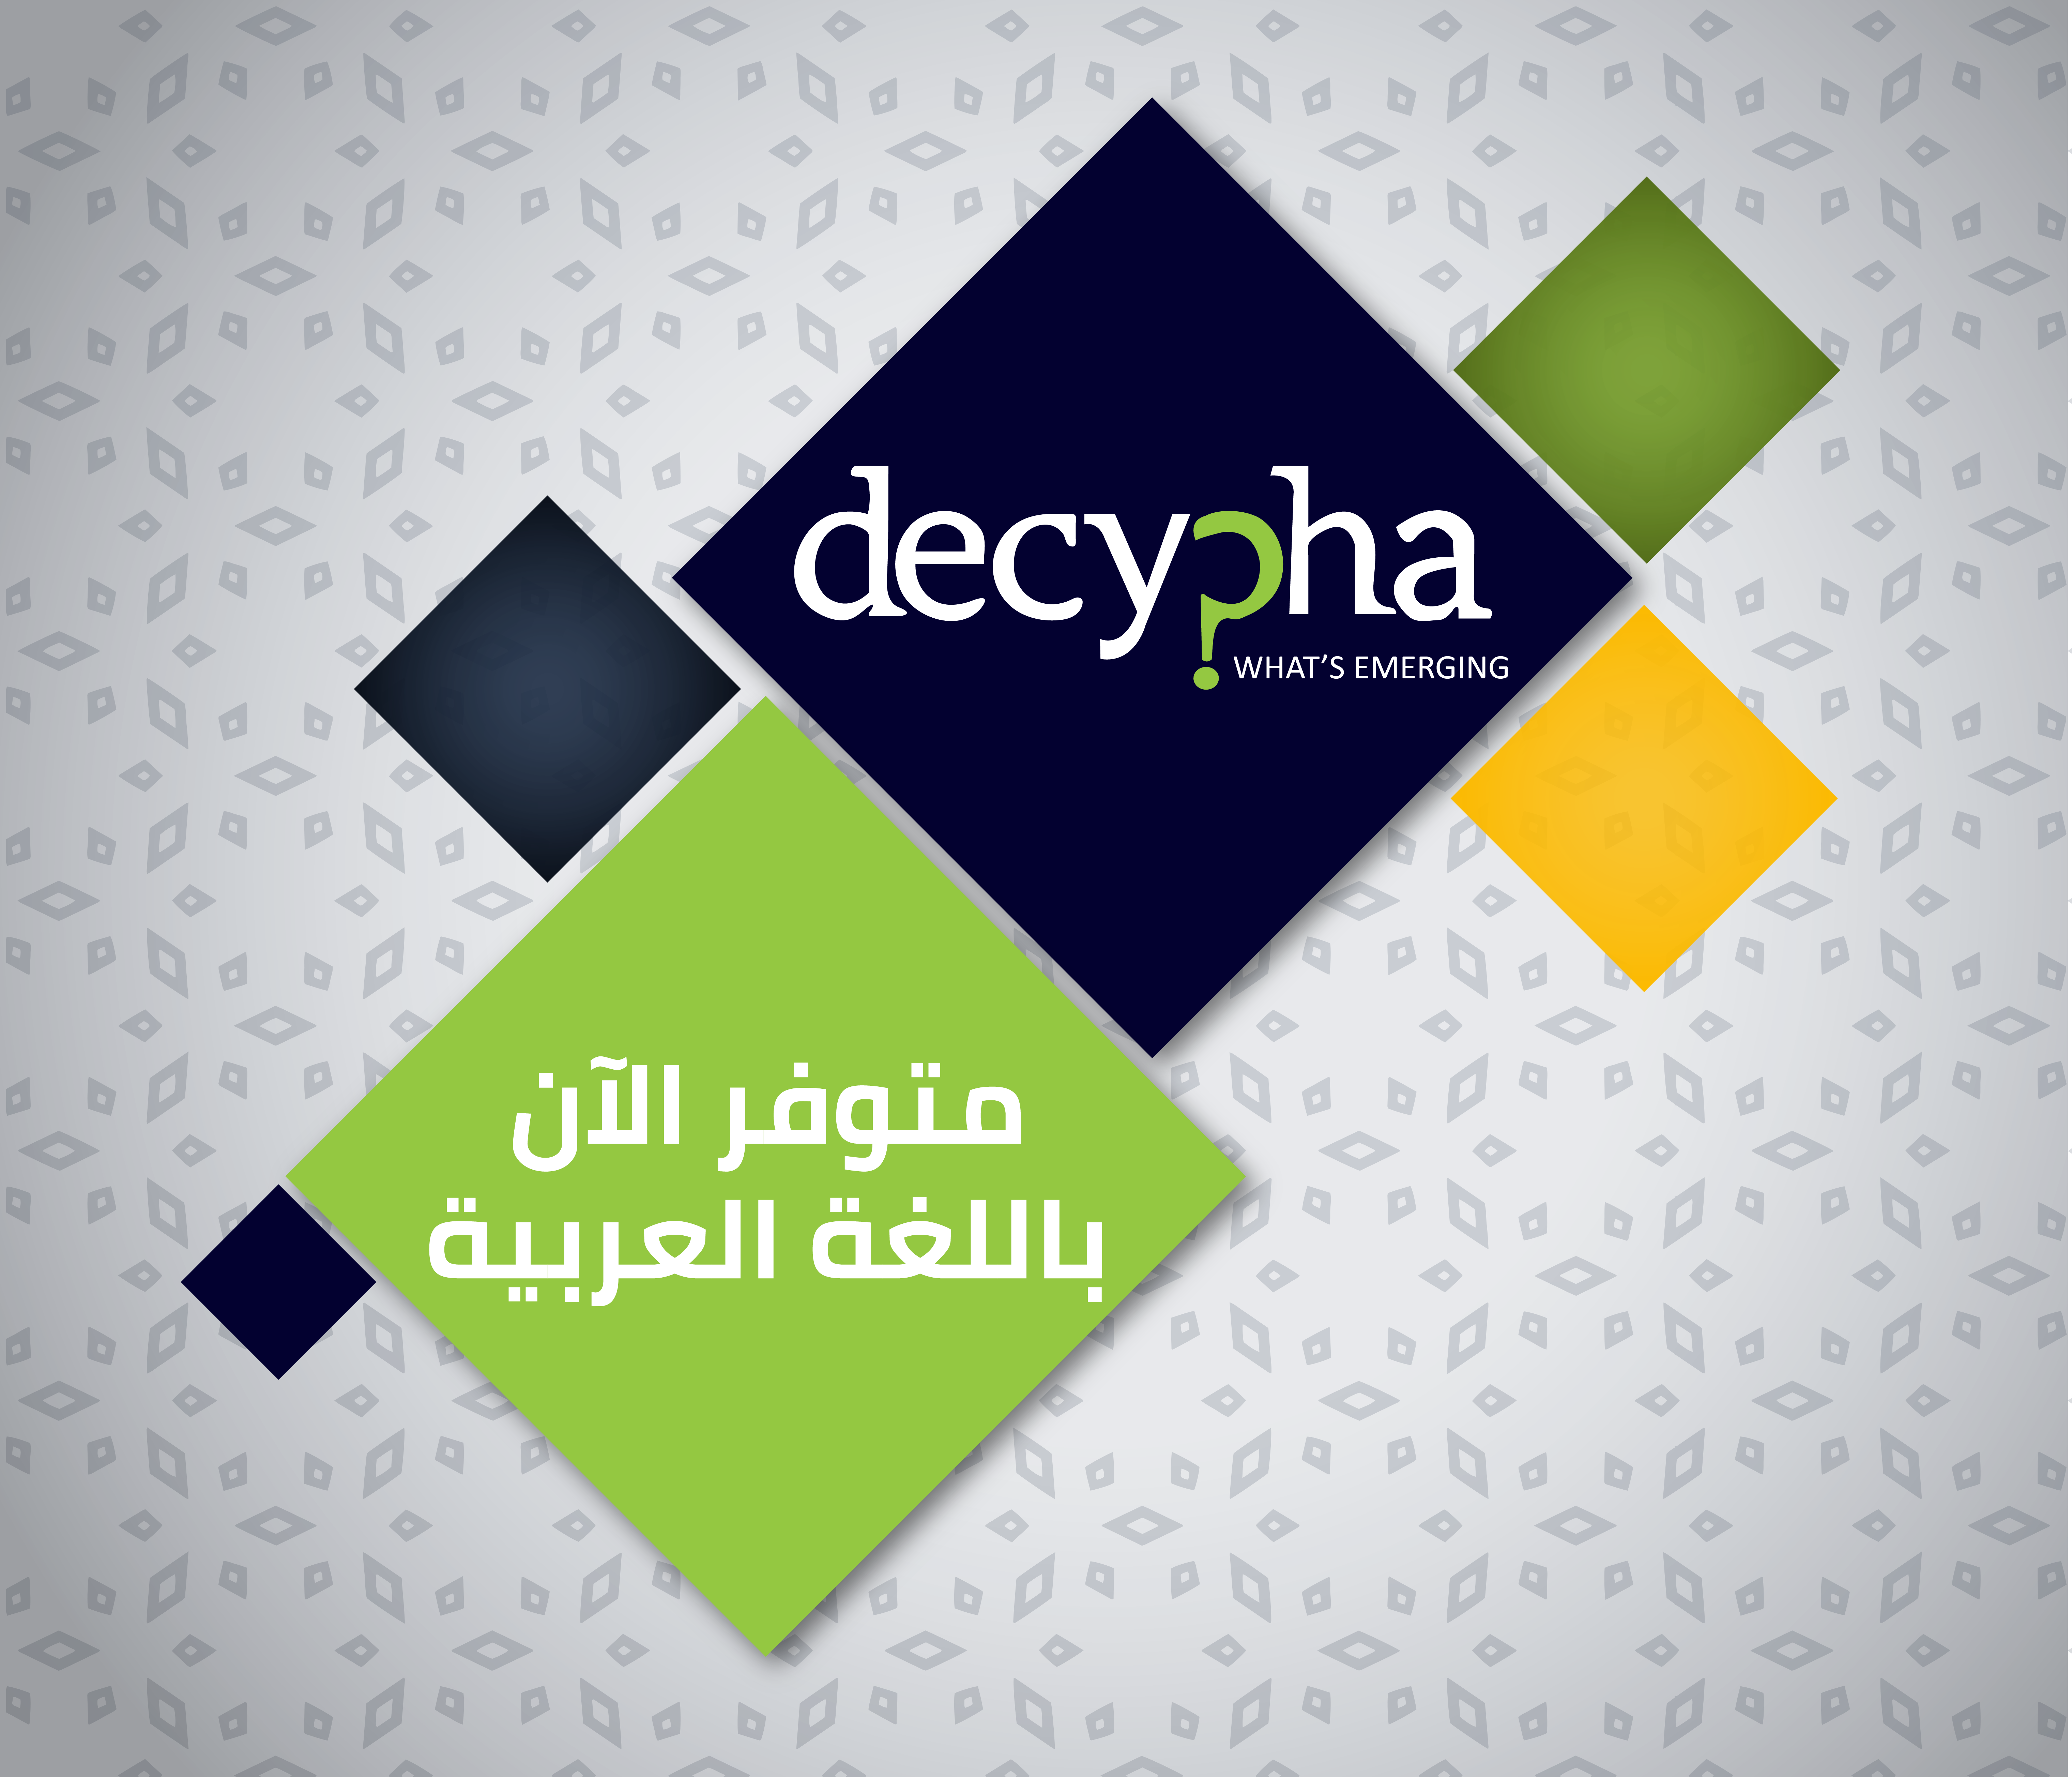 Decypha is now available in Arabic